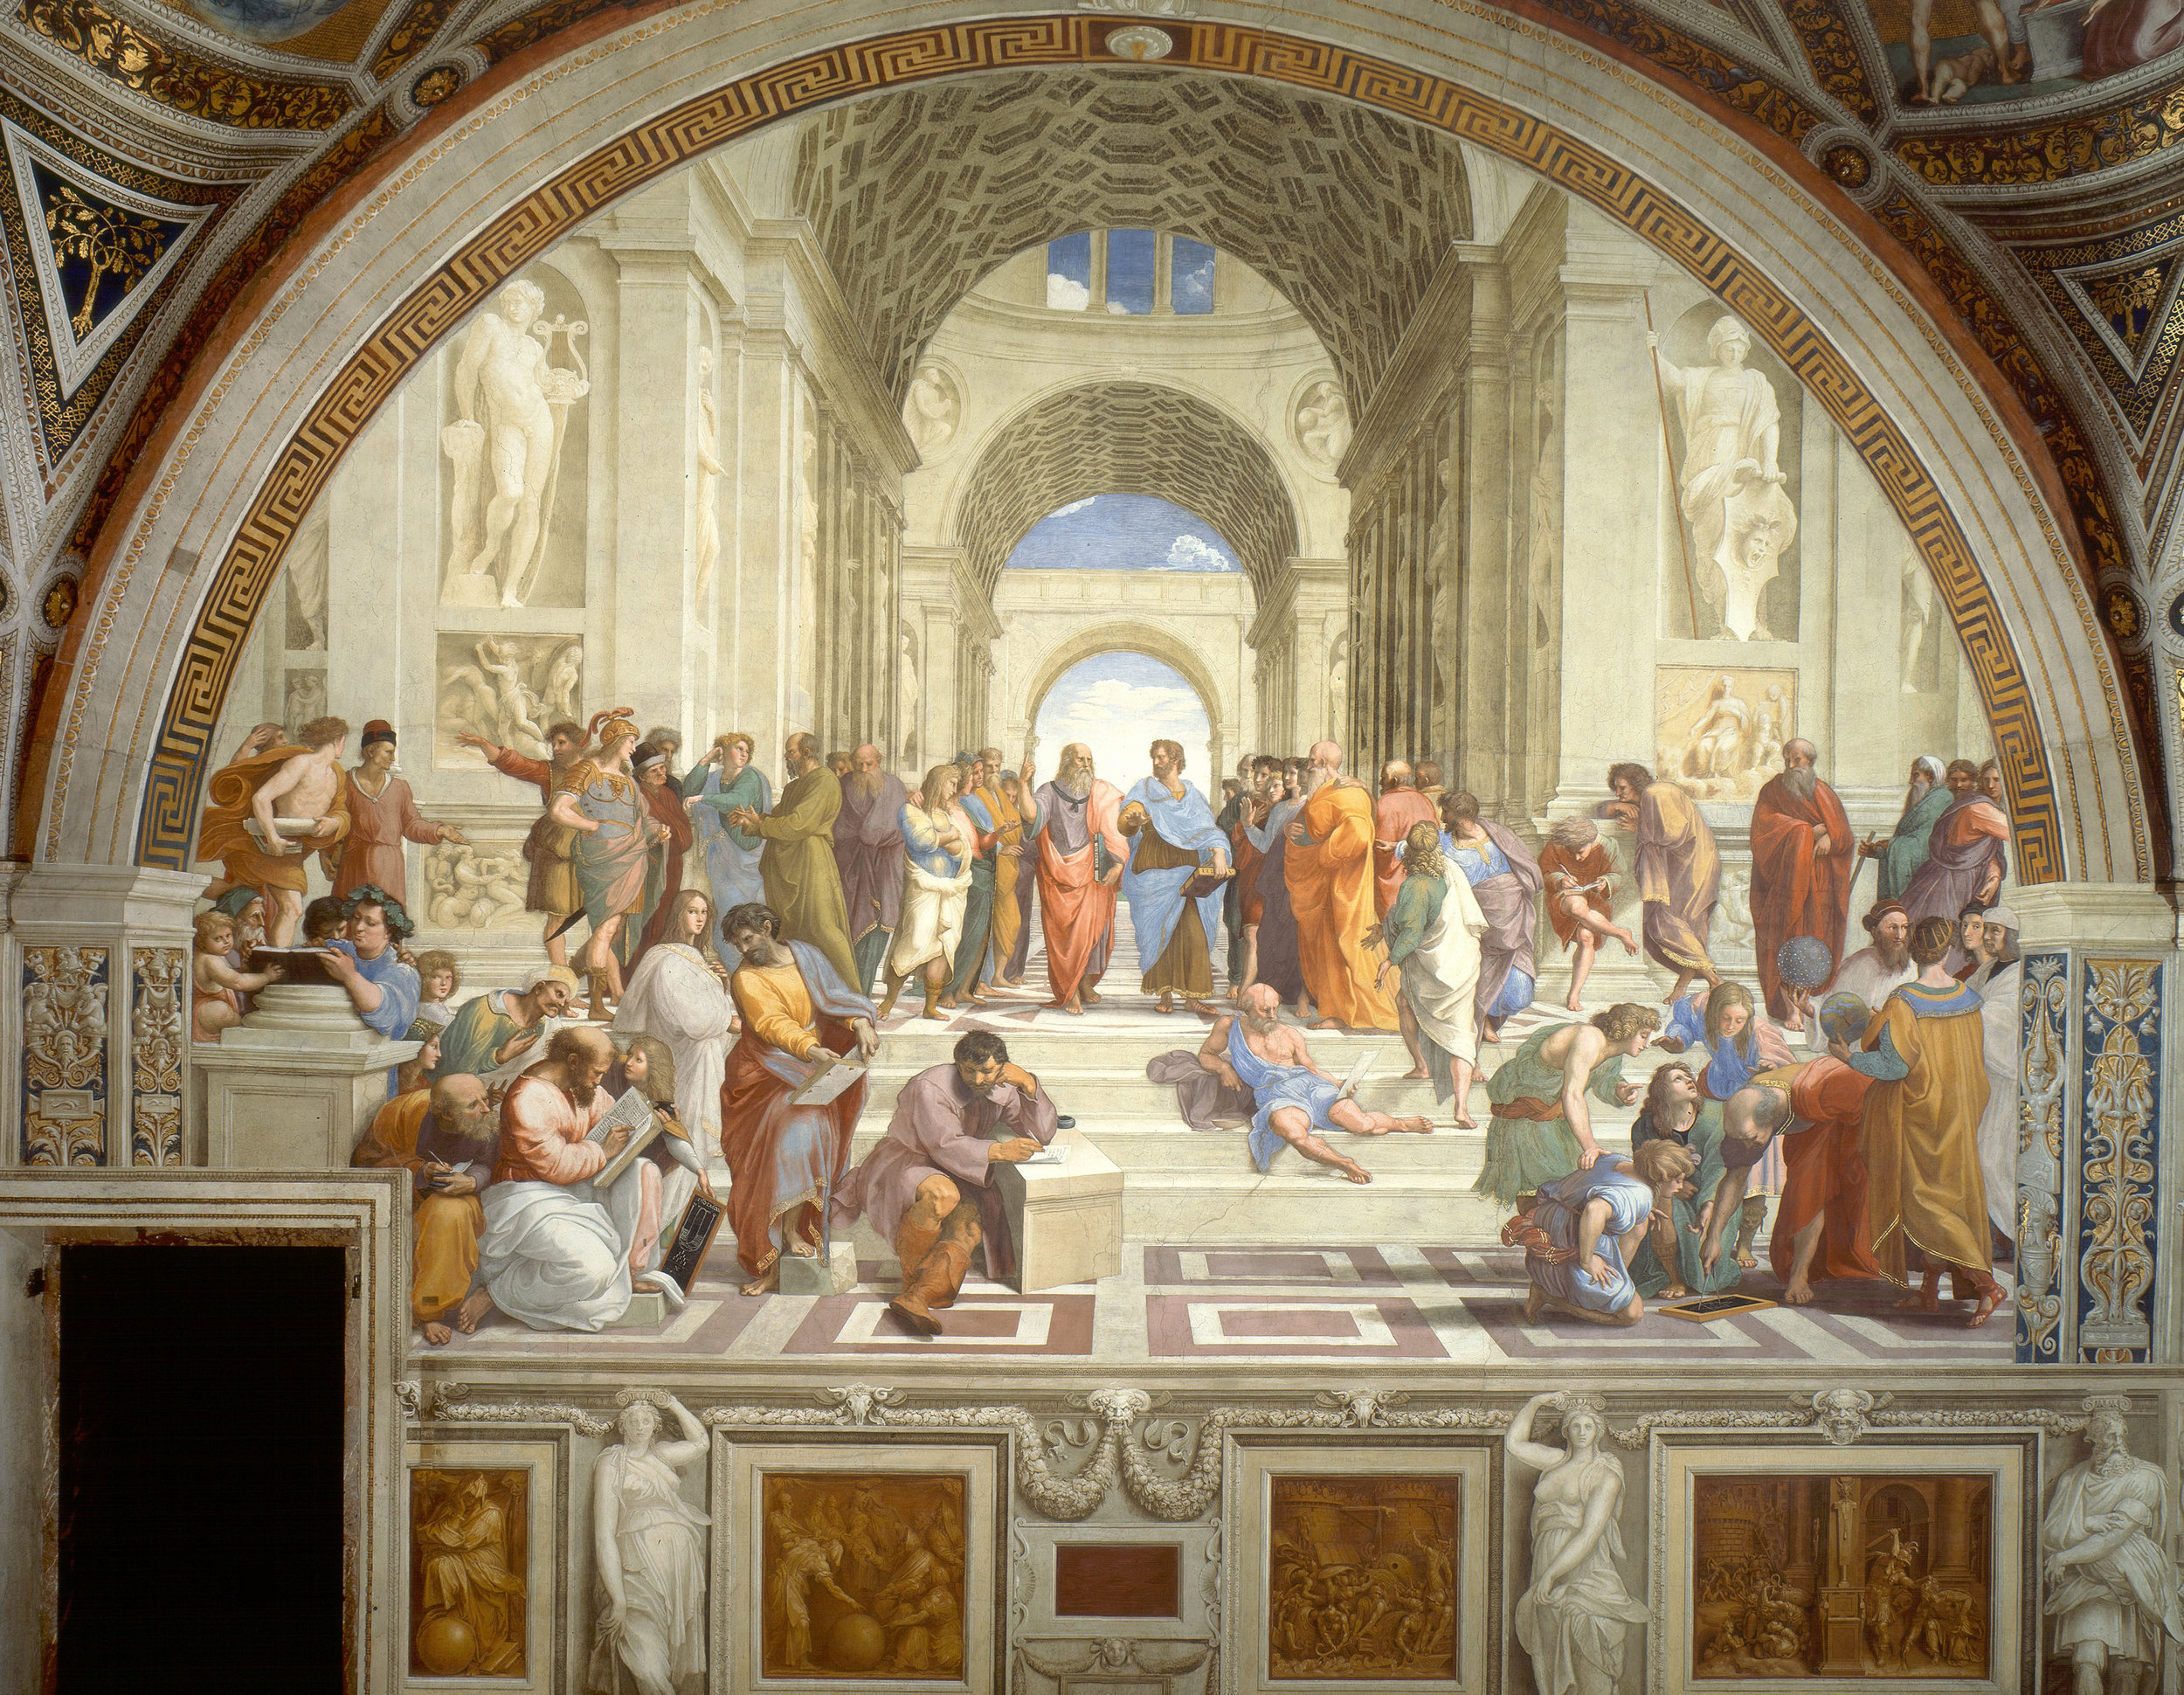 The School of Athens  by Raffaello Sanzio da Urbino, 1511, via  Wikimedia